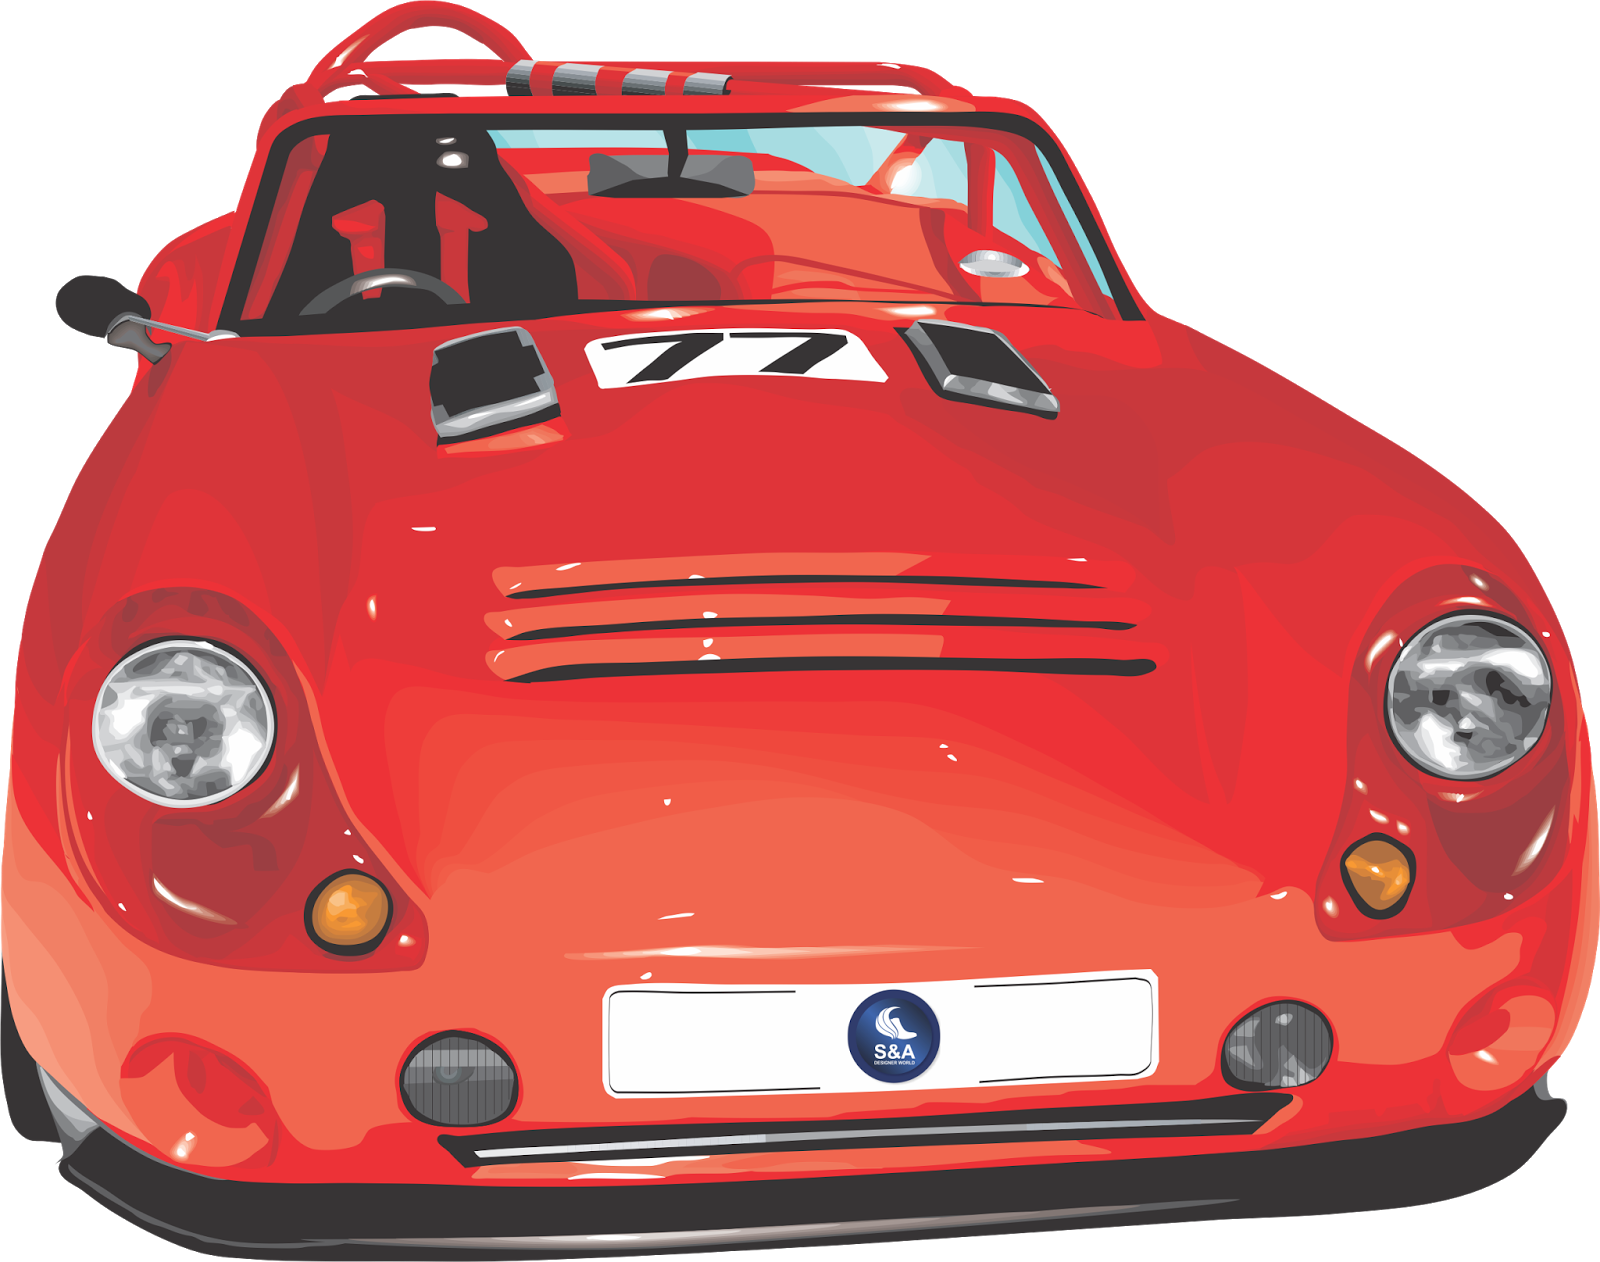 Free vector about car & Truck vector graphics ~ Designer World